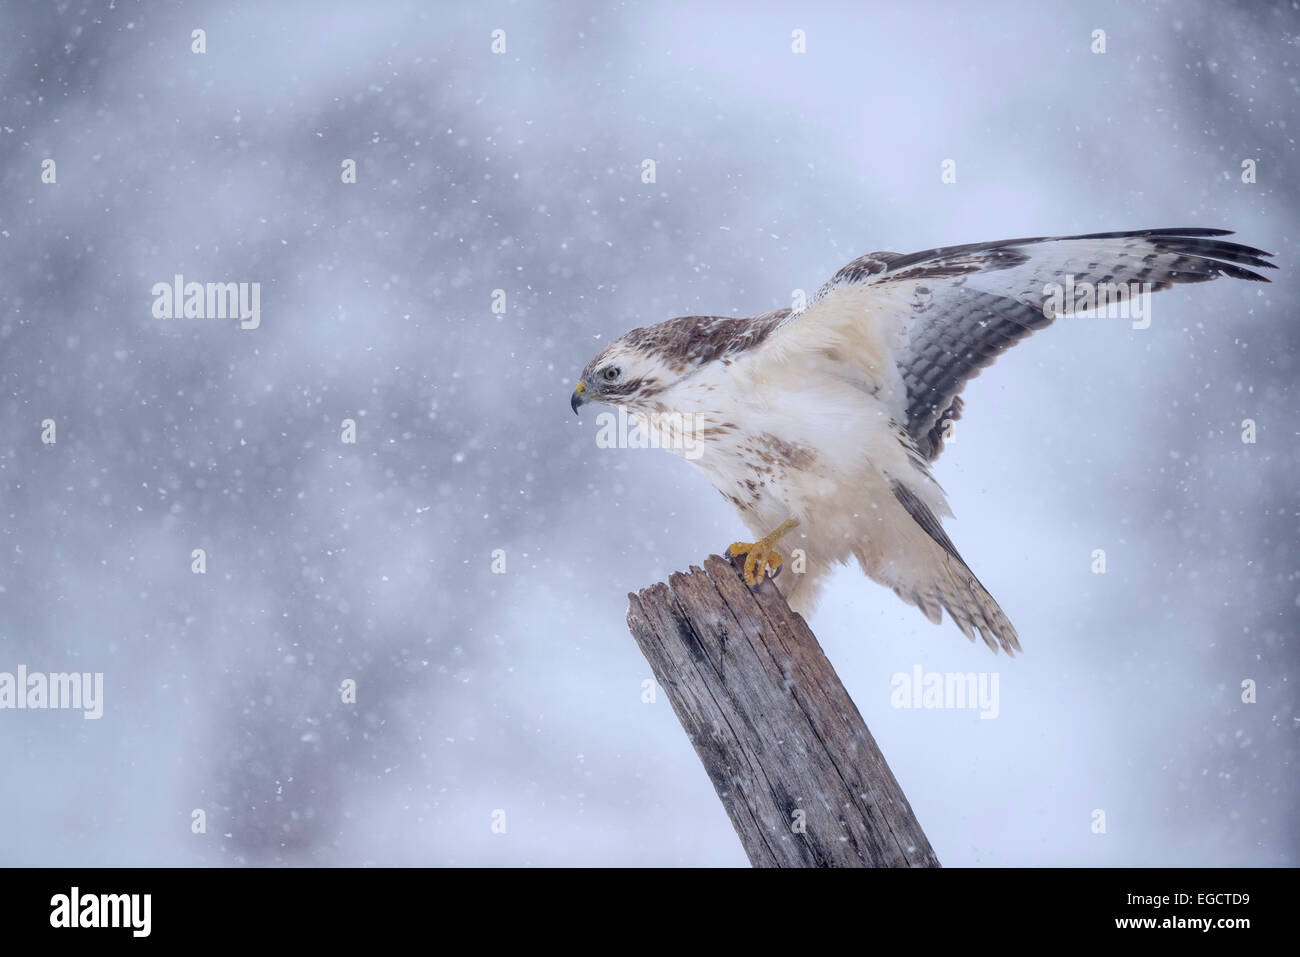 Buzzard (Buteo buteo), white morph, flapping its wings in a snowstorm, Biosphere Reserve Swabian Alb, Baden-Württemberg - Stock Image